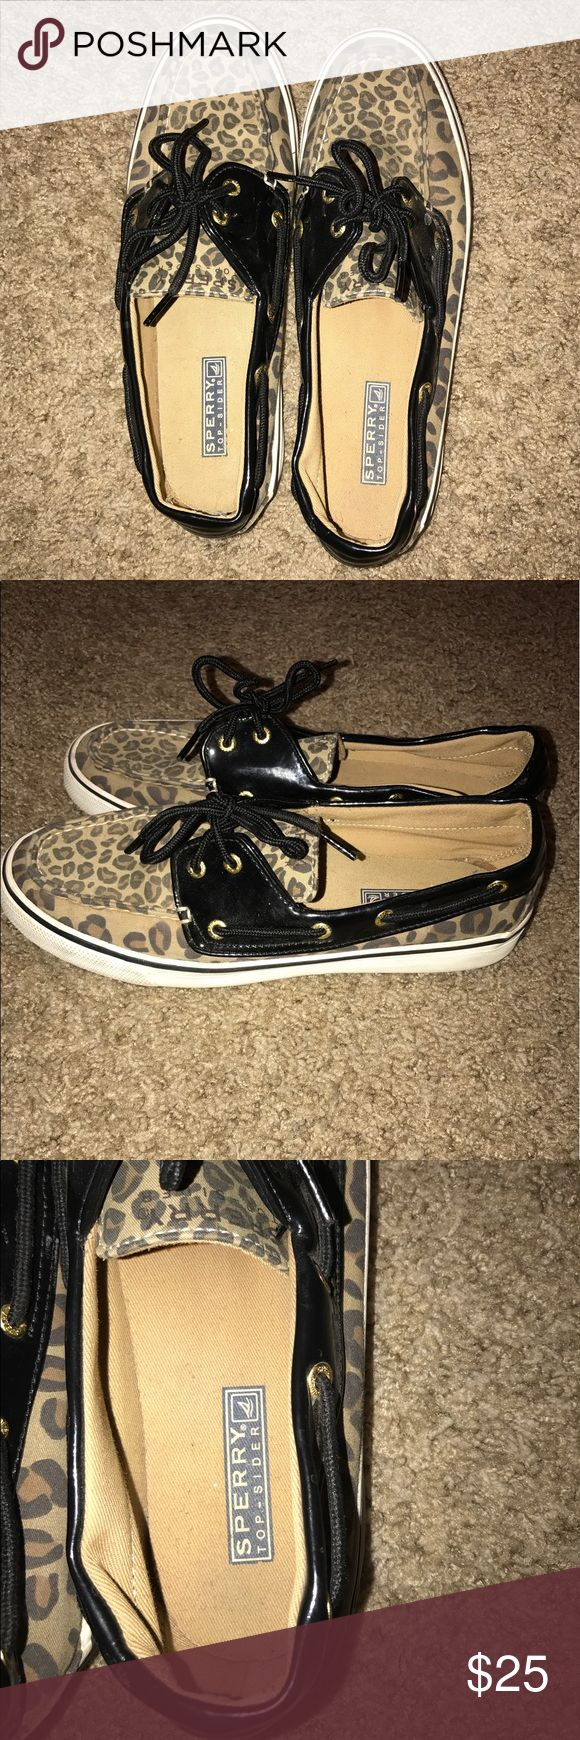 Cheetah sperry-top sider shoes Cheetah print sperry top sider boat shoes Sperry Top-Sider Shoes Flats & Loafers